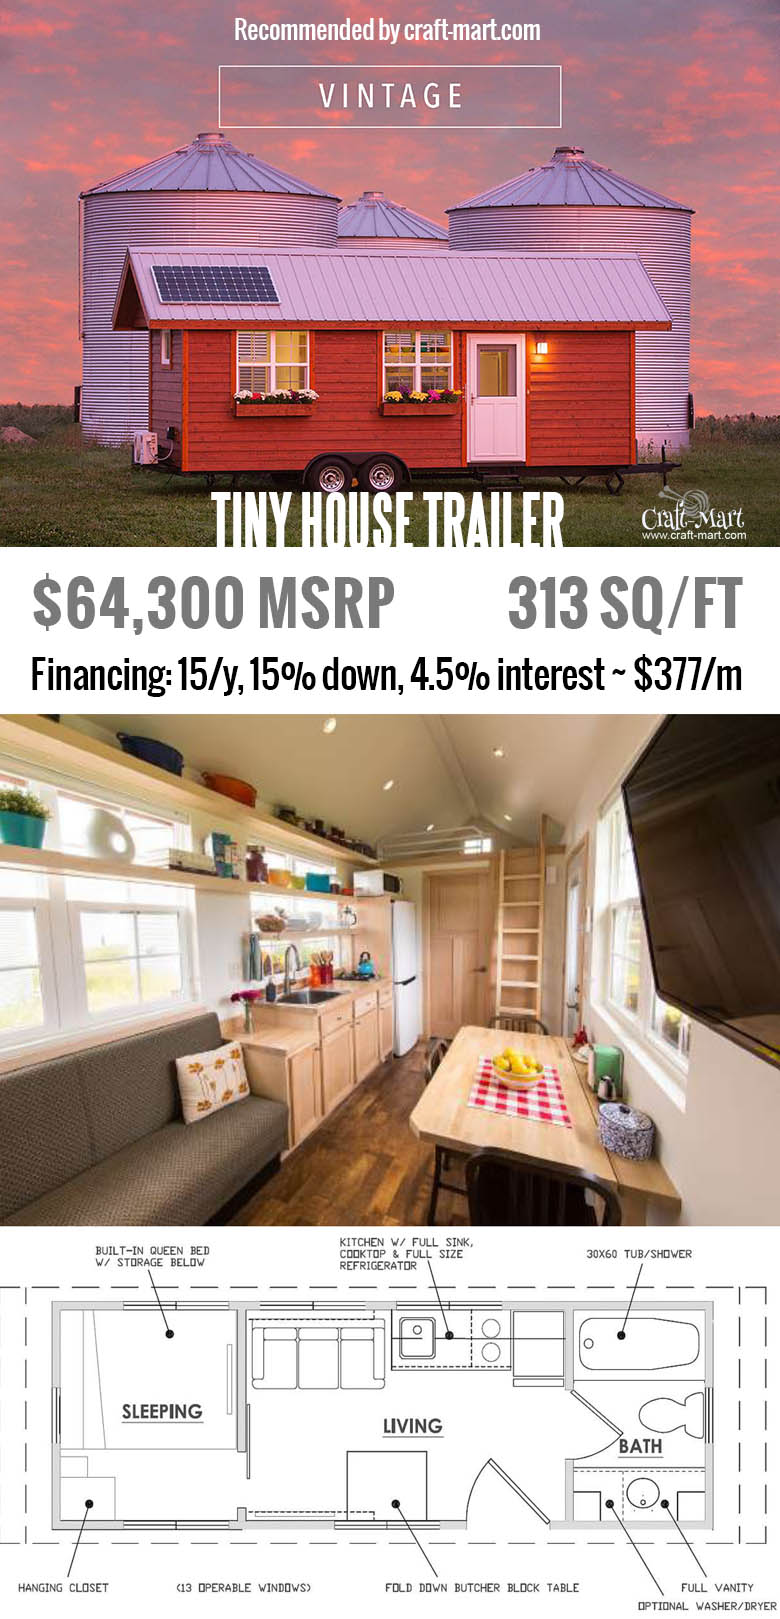 Vintage is full of light with a dozen, large opening windows. Do you have a place to put one of these tiny houses? Get one of these for FREE and start earning money from renting it! Or simply buy one of the most beautiful tiny house trailers with easy financing starting from $195/m! #tinyhouse #tinyhouseplans #minimalism